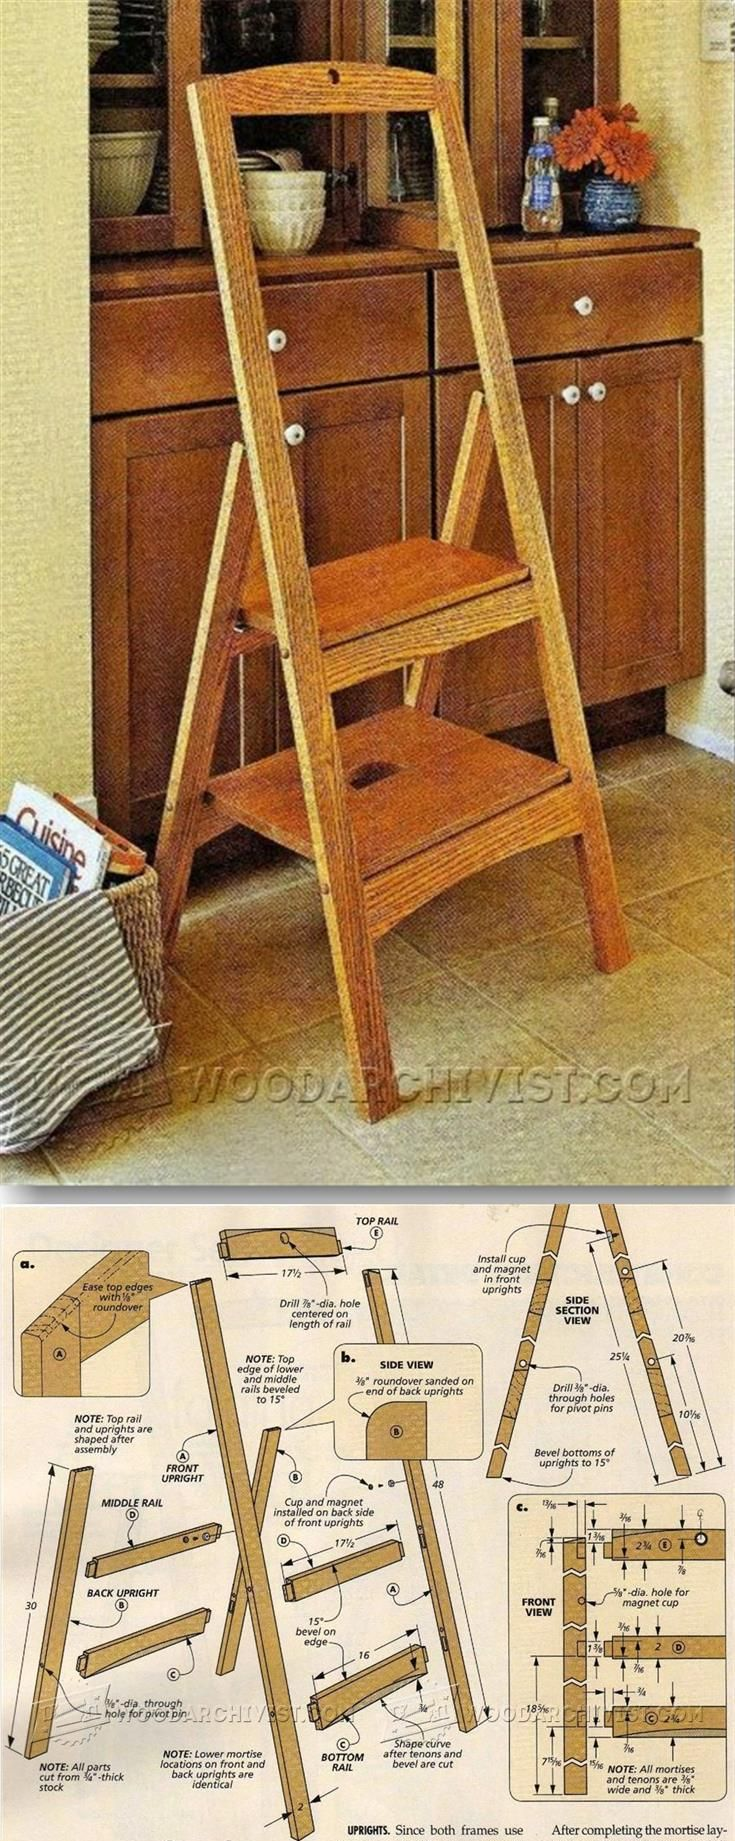 best 25 step stools ideas on pinterest rustic kids step stools diy stool and 2x4 wood projects. Black Bedroom Furniture Sets. Home Design Ideas